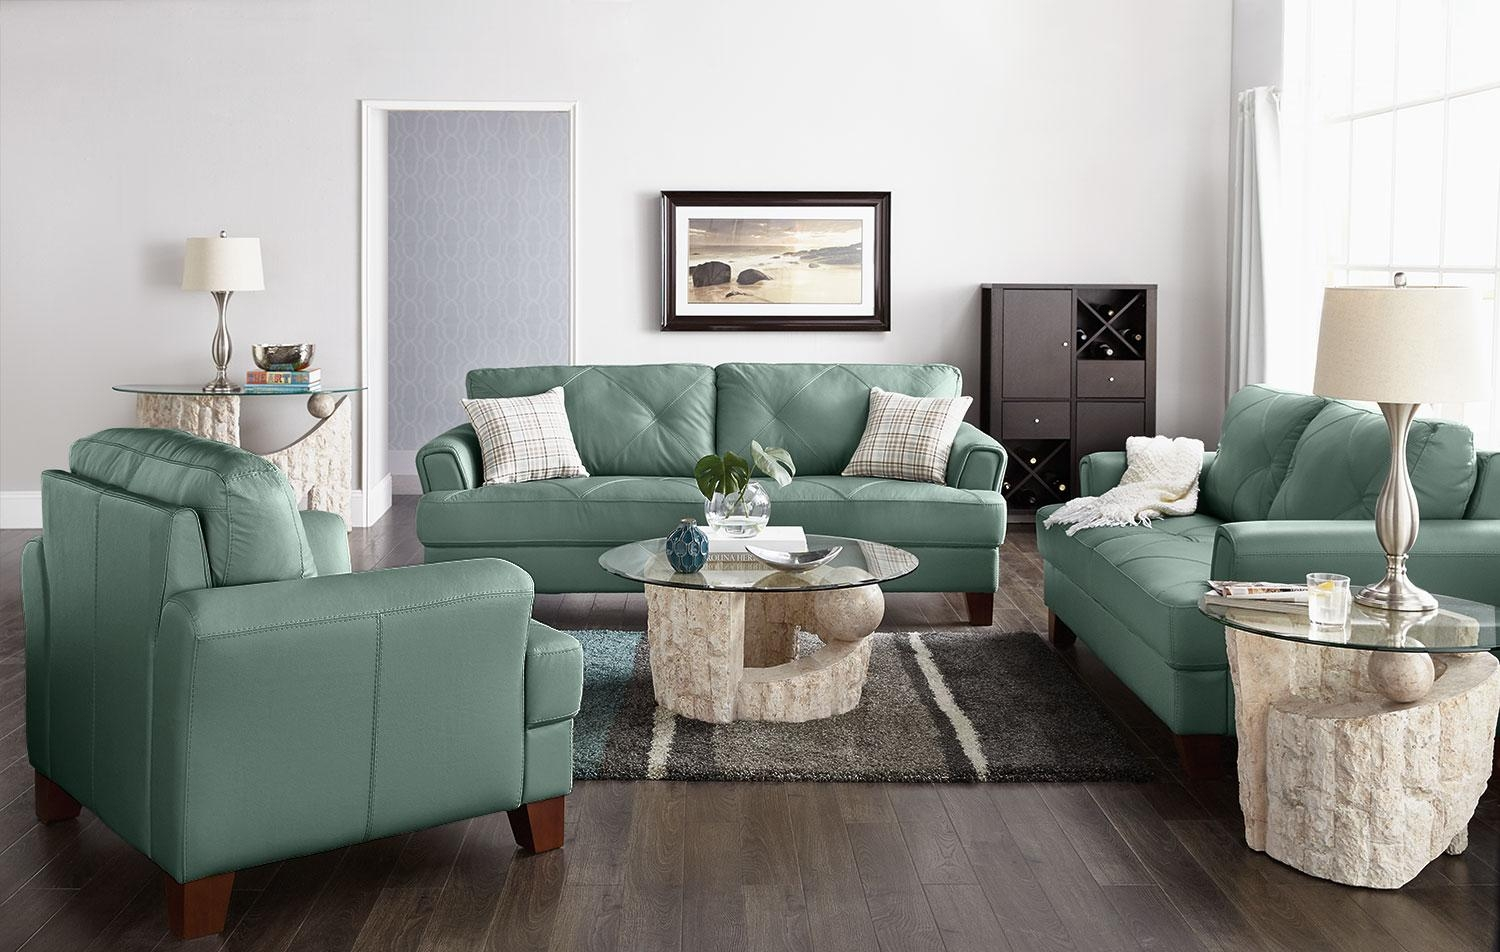 Vita 100% Genuine Leather Sofa – Sea Foam | The Brick intended for Seafoam Green Couches